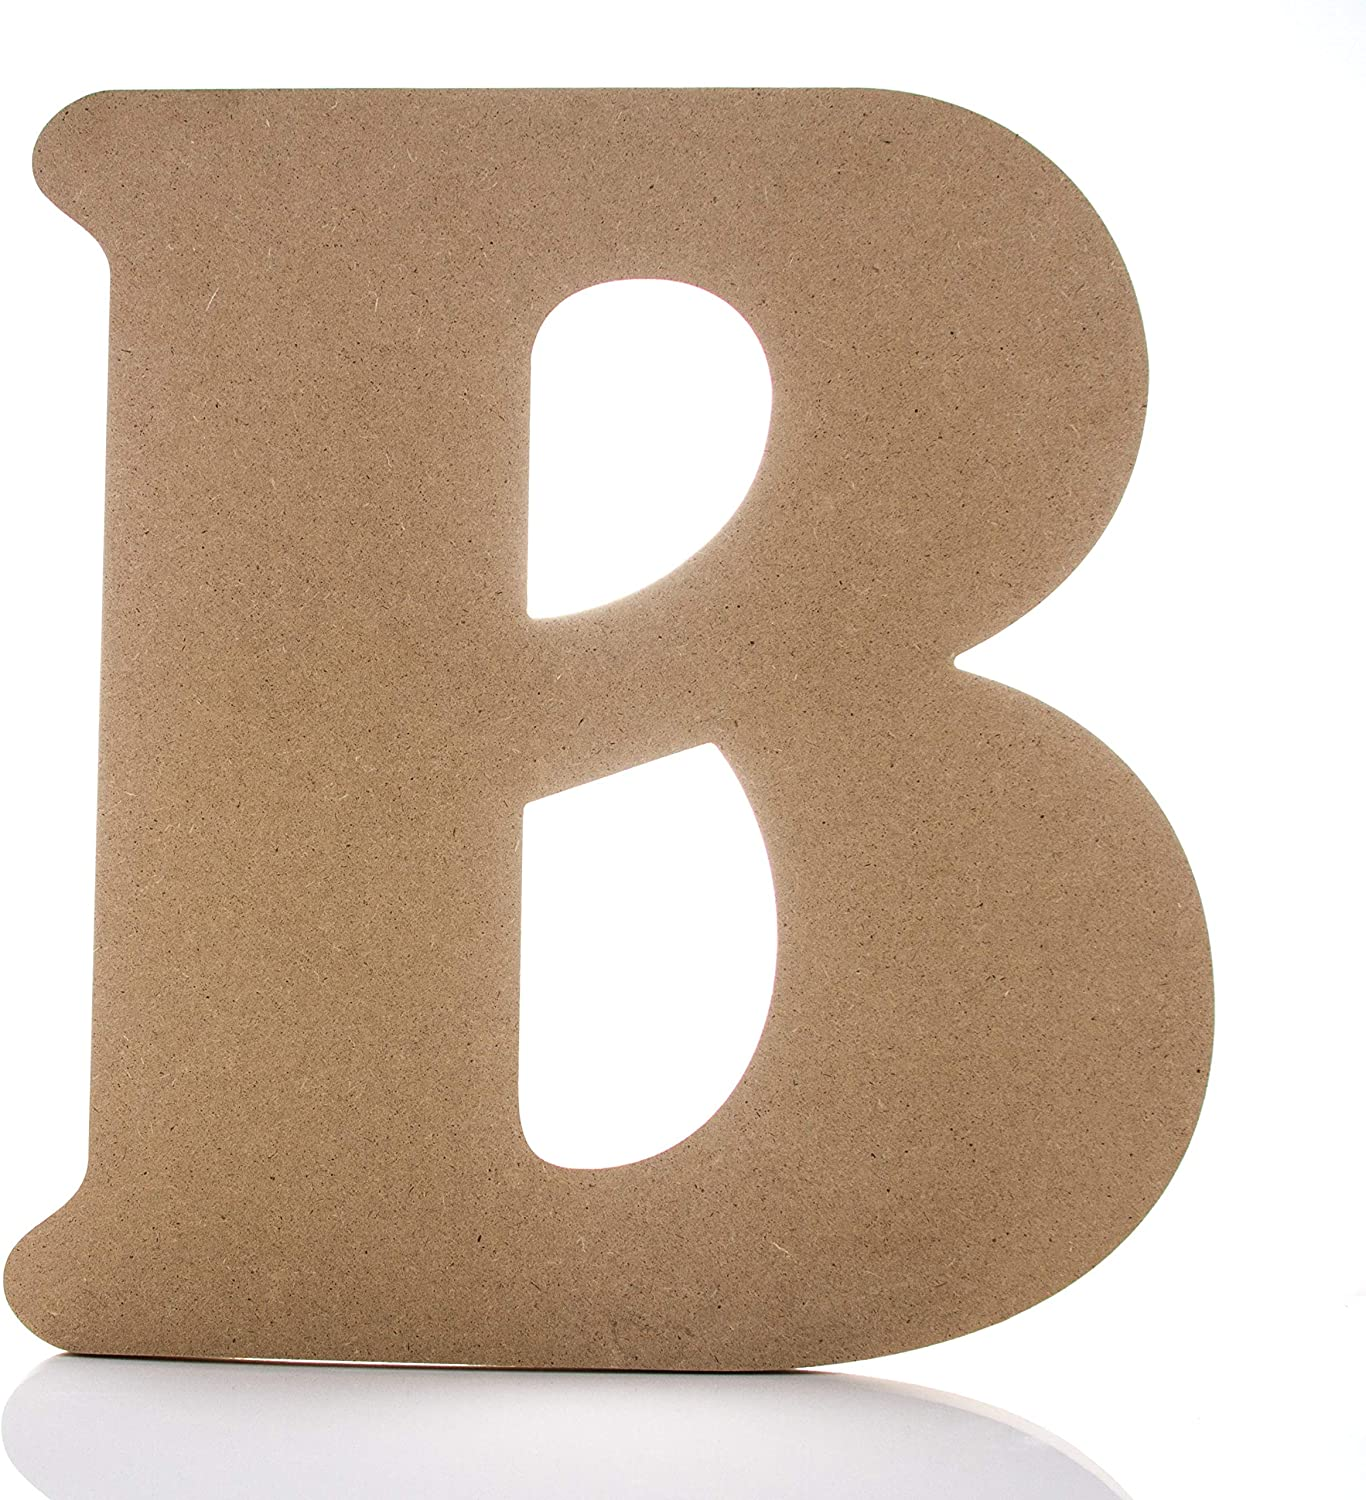 "Large Wooden Letters - 12"" - B - Premium Unfinished Wood Letters for Wall Decor (12 inch, B)"